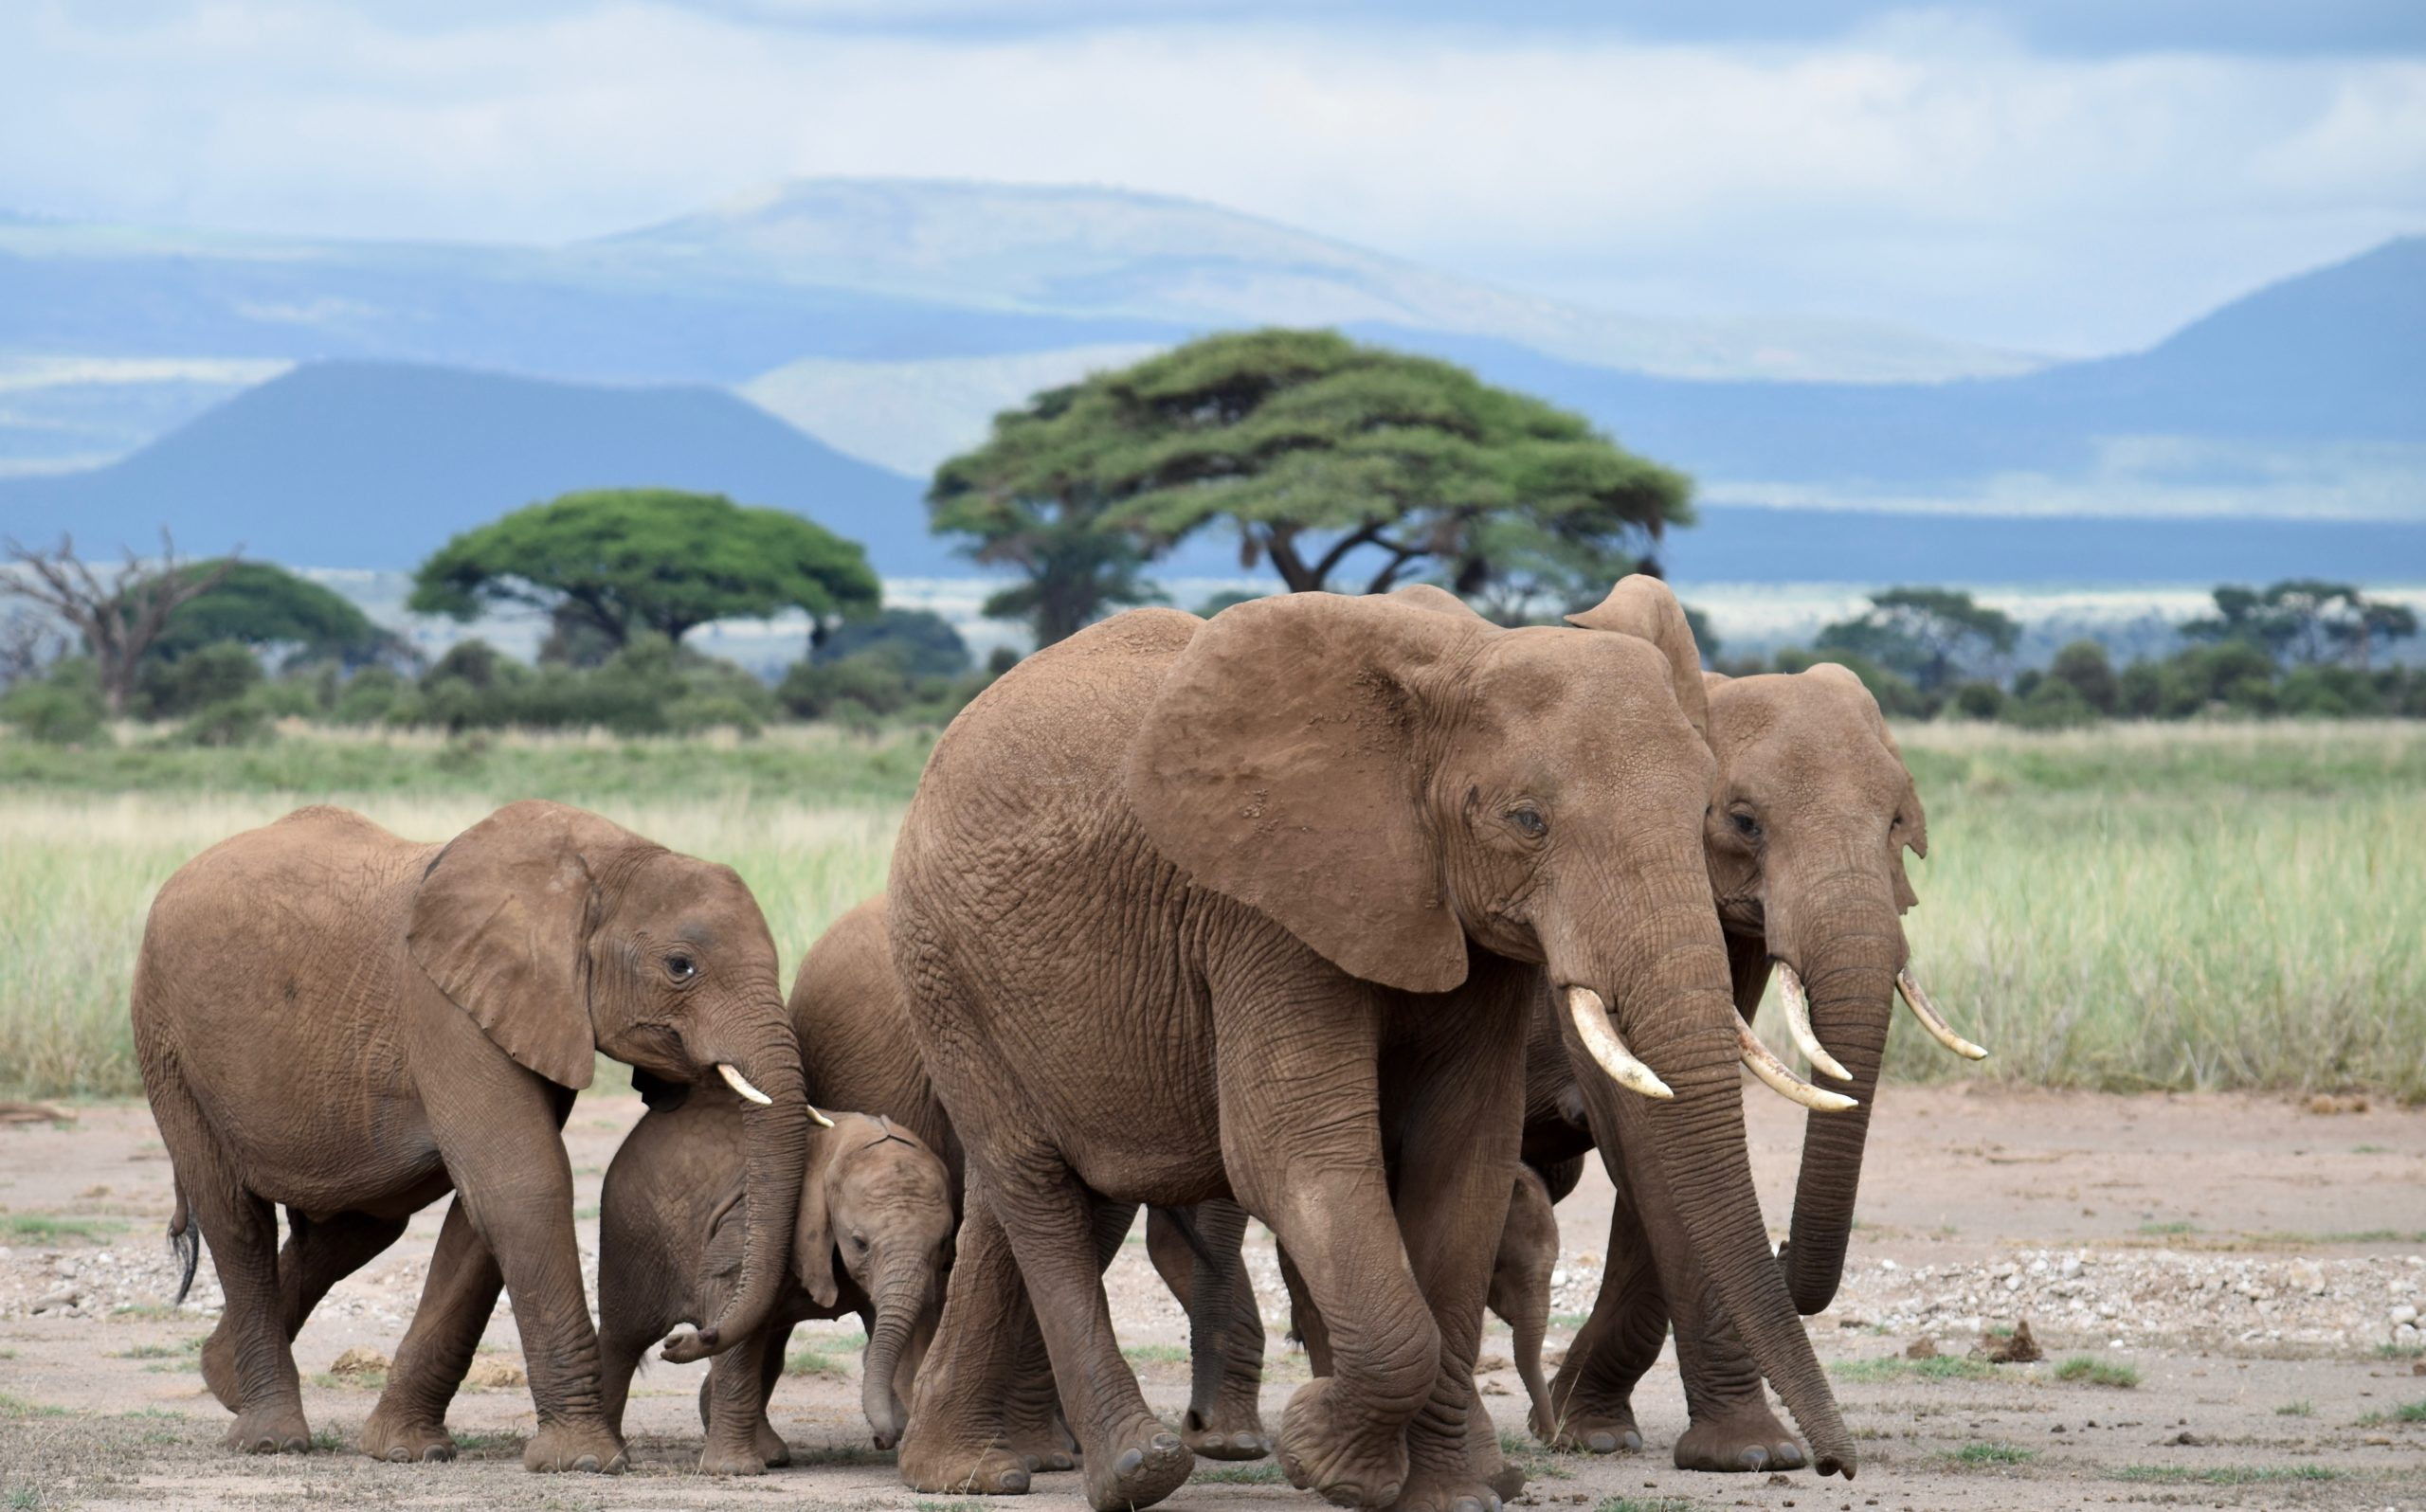 An elephant family on its daily march to the swamps in Amboseli National Park, Kenya